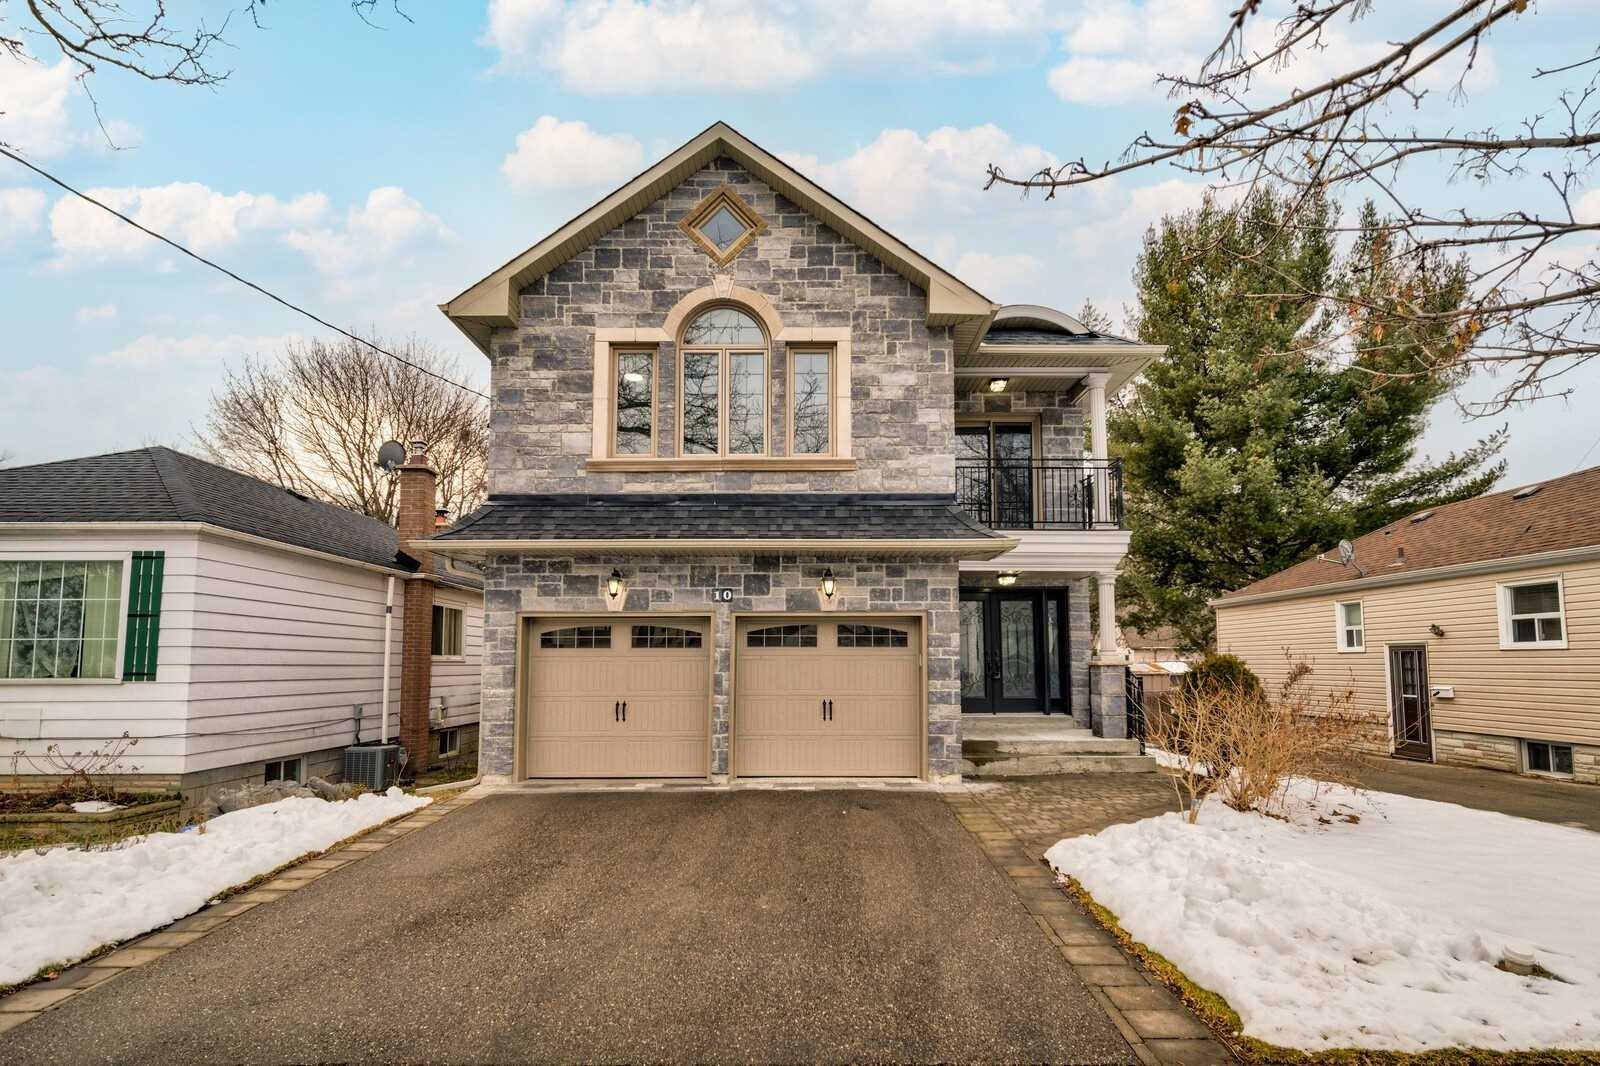 10 Westbourne Ave, Toronto, Ontario M1L2X9, 4 Bedrooms Bedrooms, 11 Rooms Rooms,5 BathroomsBathrooms,Detached,For Sale,Westbourne,E5085166